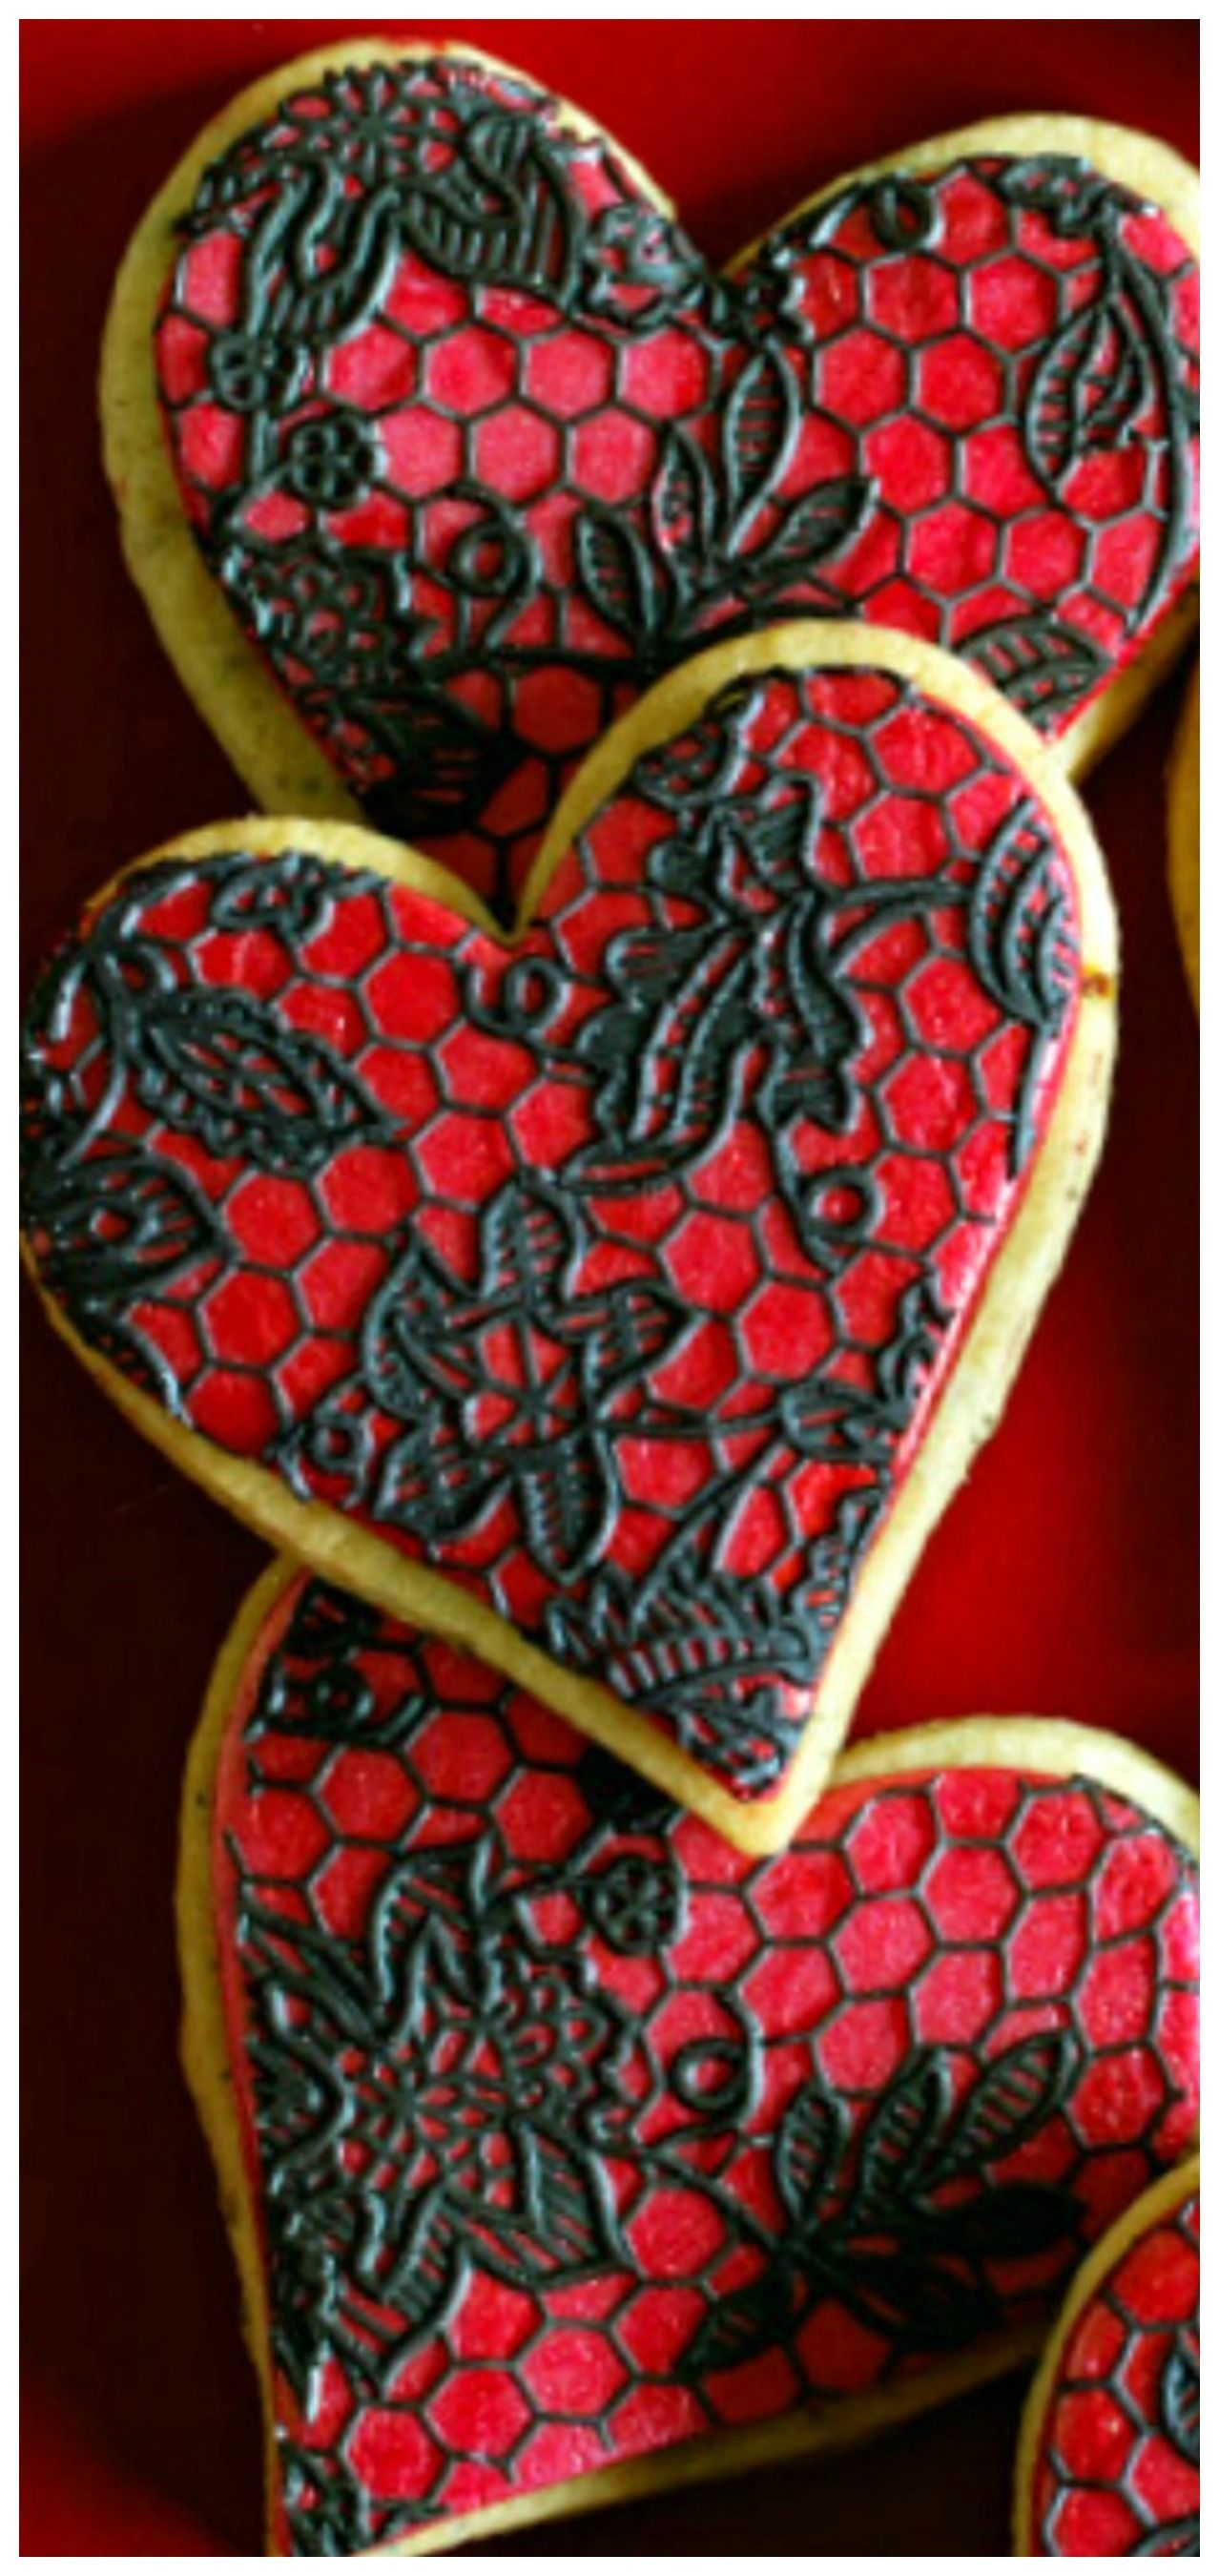 Valentine's Lace Cookies #flavoredmarshmallows Valentine's Lace Sugar Cookies ~  These show-stopping lace sugar cookies start with a lime and pistachio flavored base,then topped with marshmallow fondant. #flavoredmarshmallows